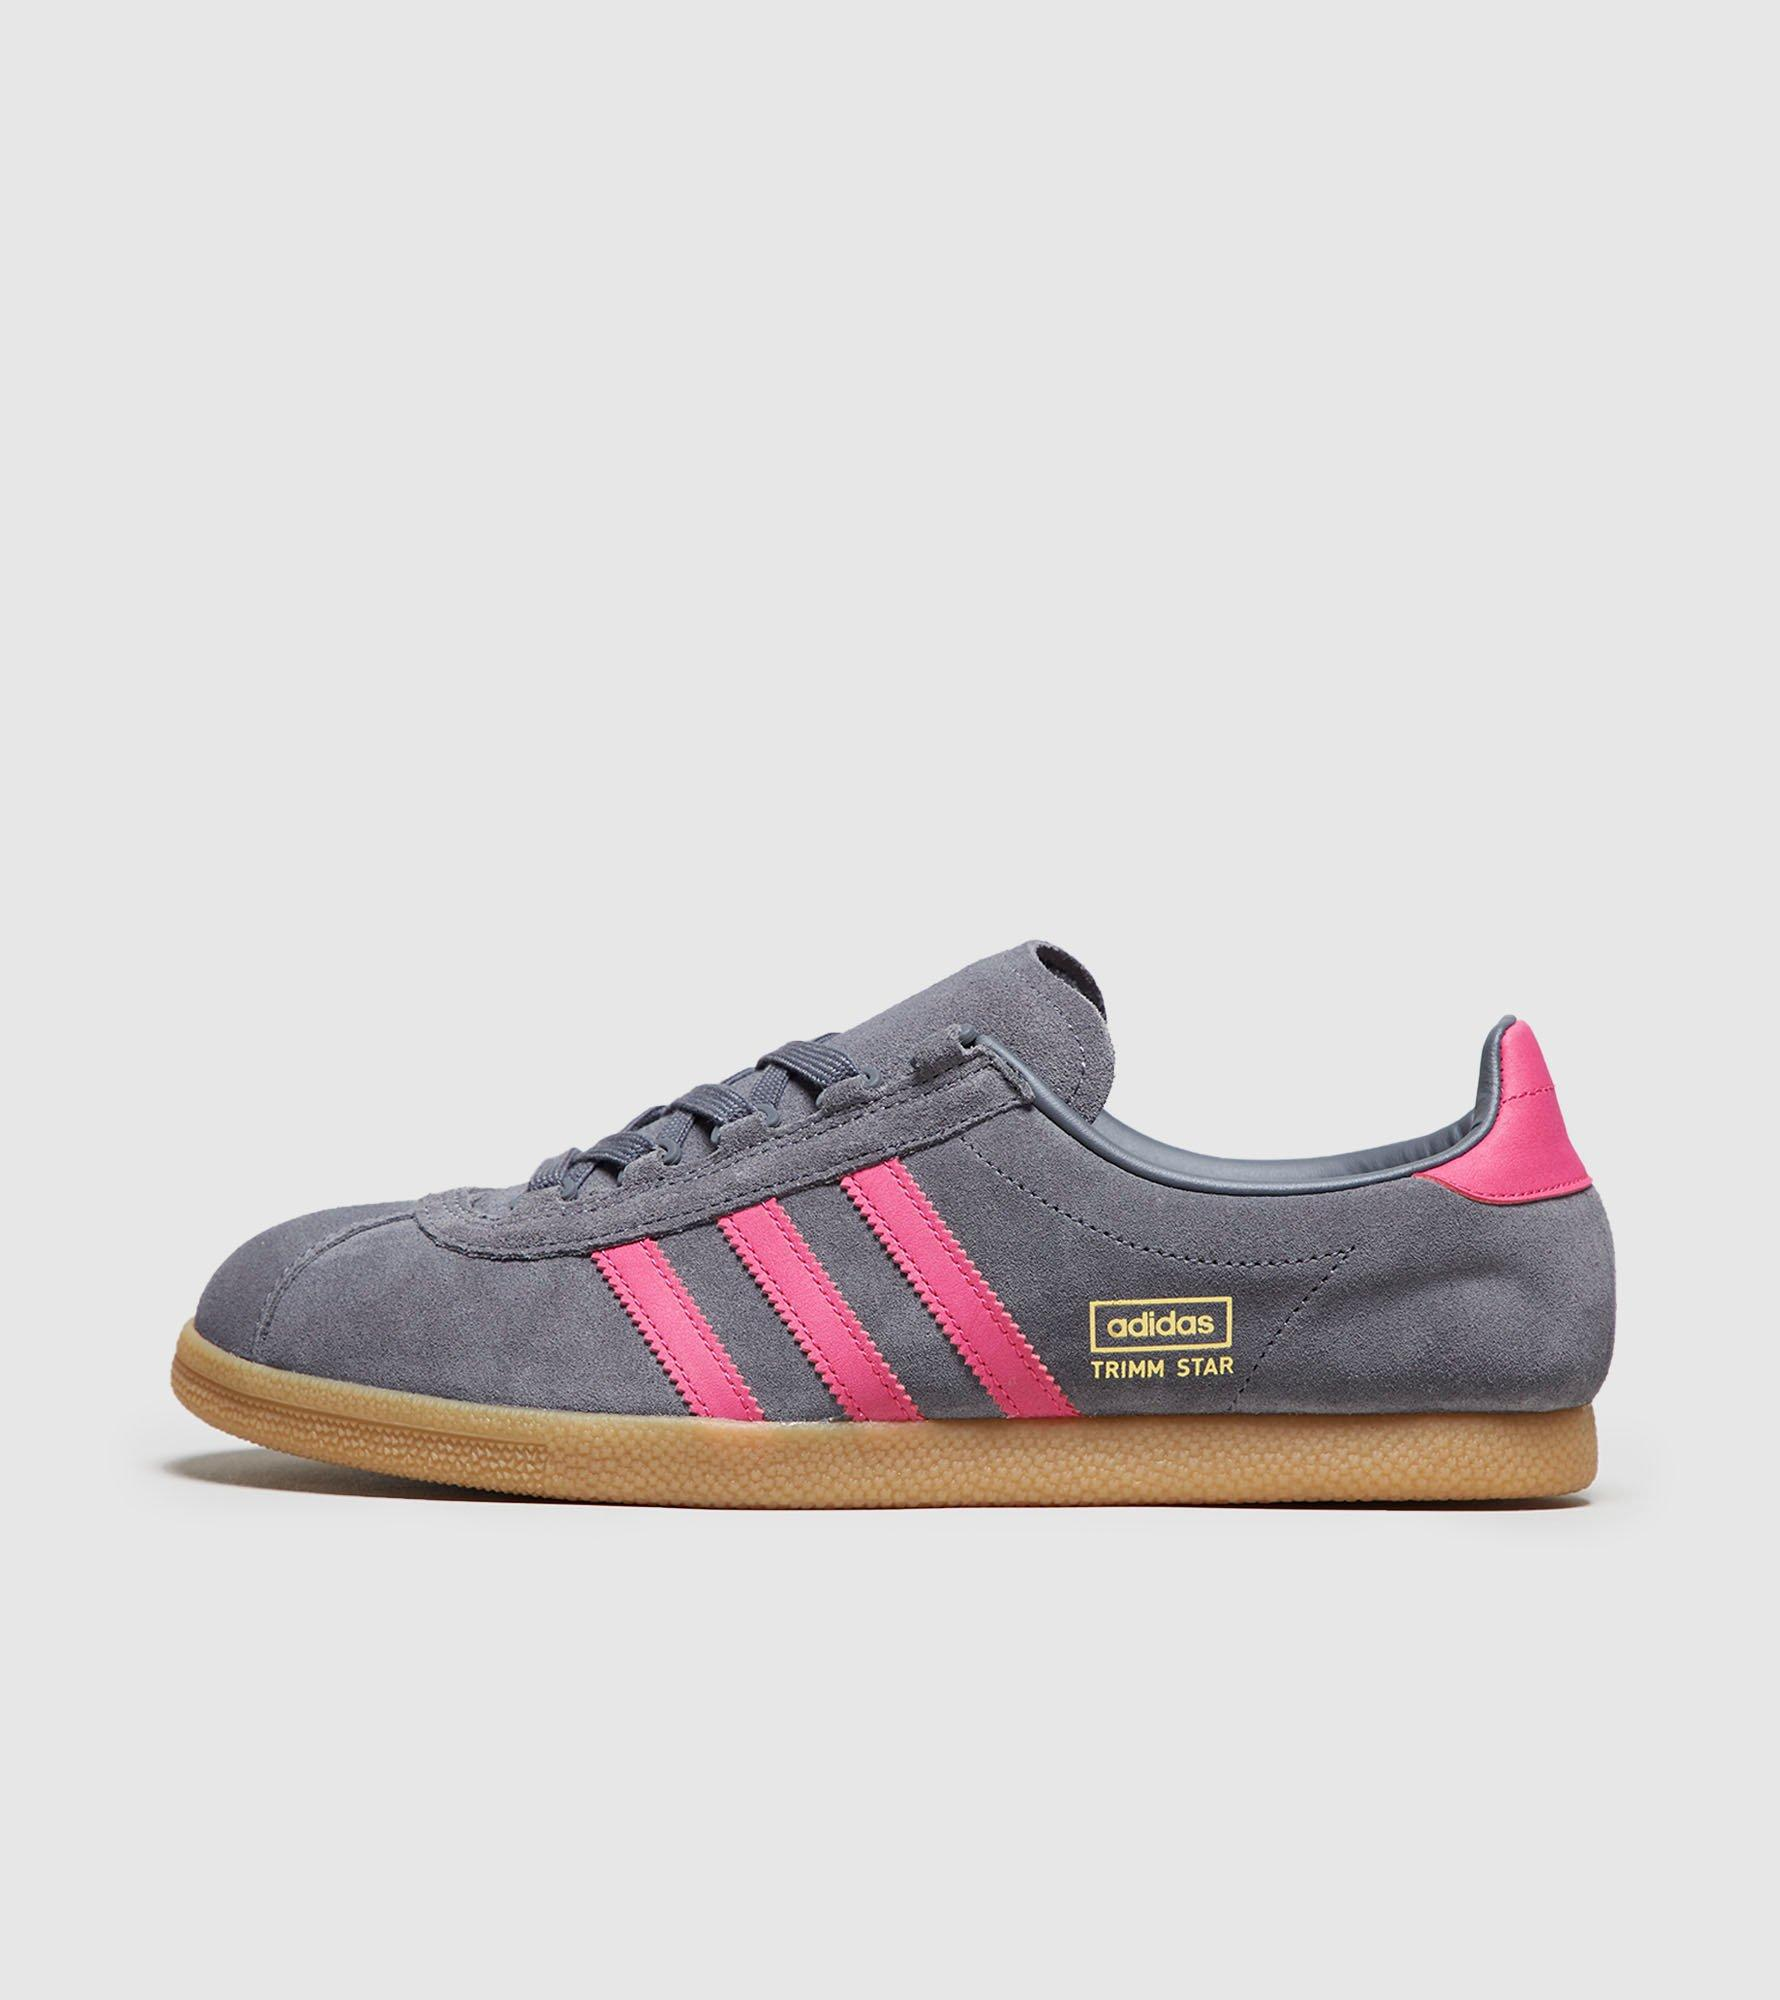 Adidas Originals Trimm Star - Size  Exclusive in Gray for Men - Lyst 53fbc88aa